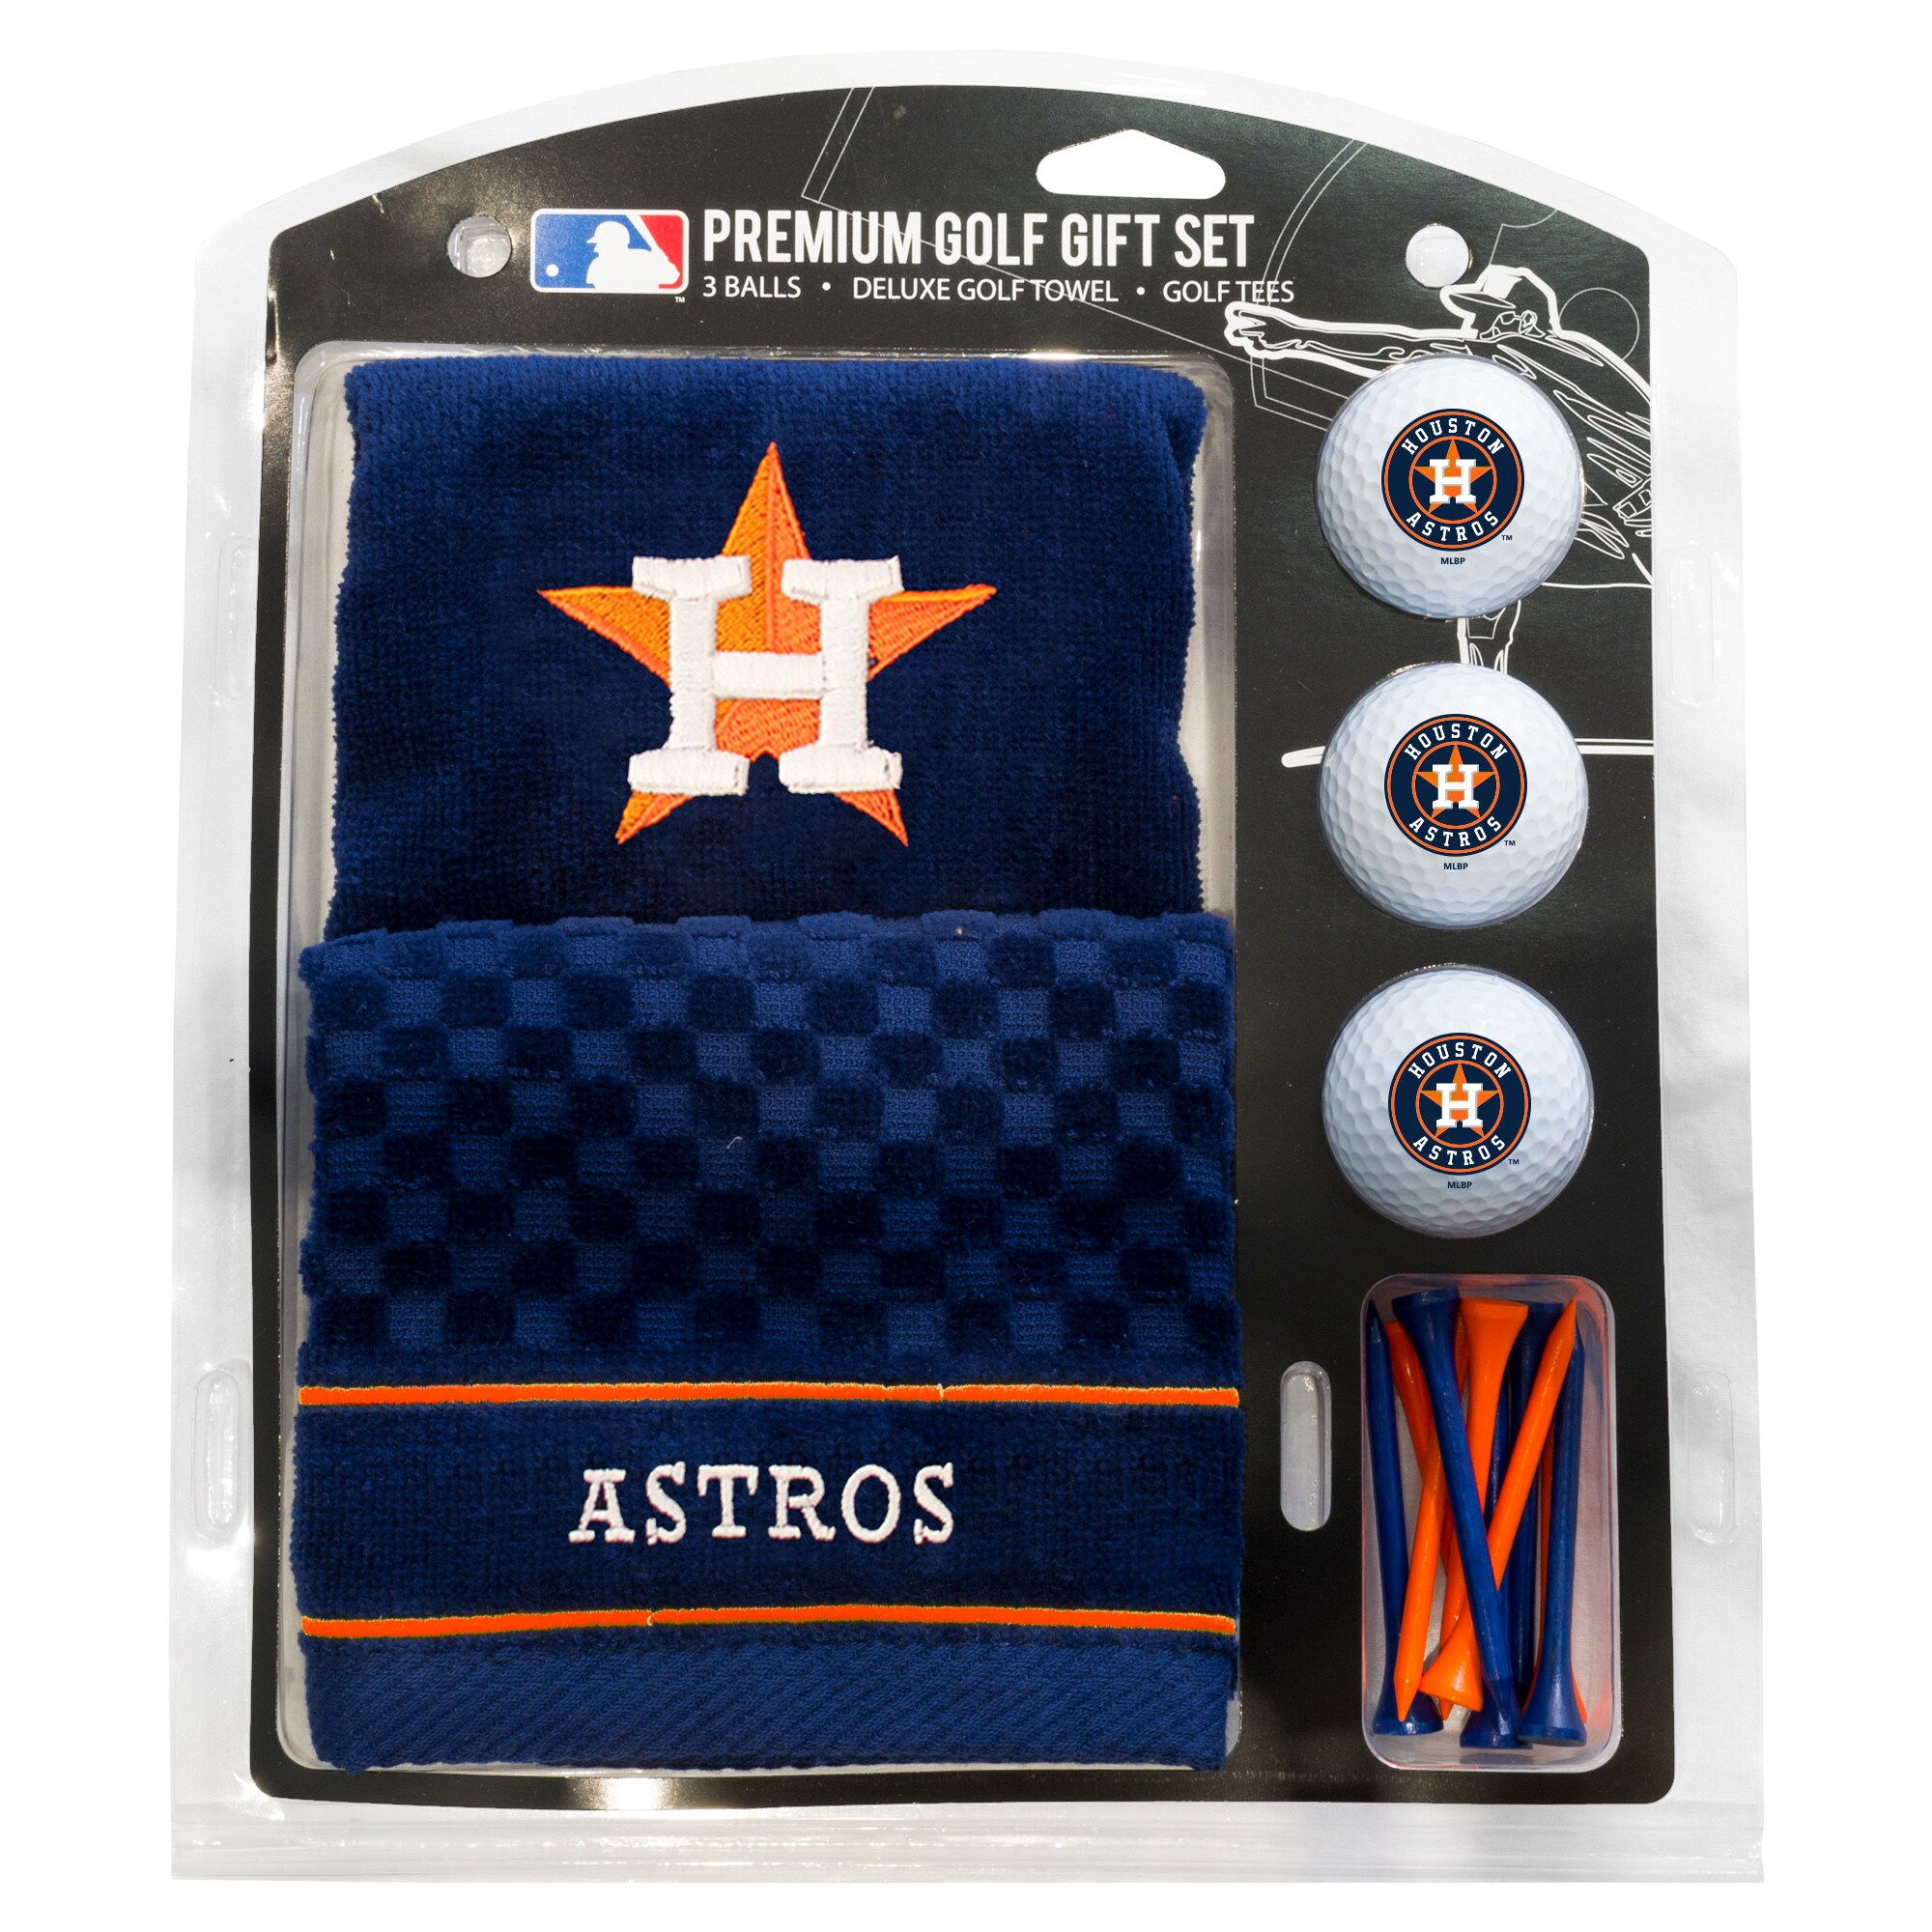 Houston Astros Embroidered Golf Gift Set